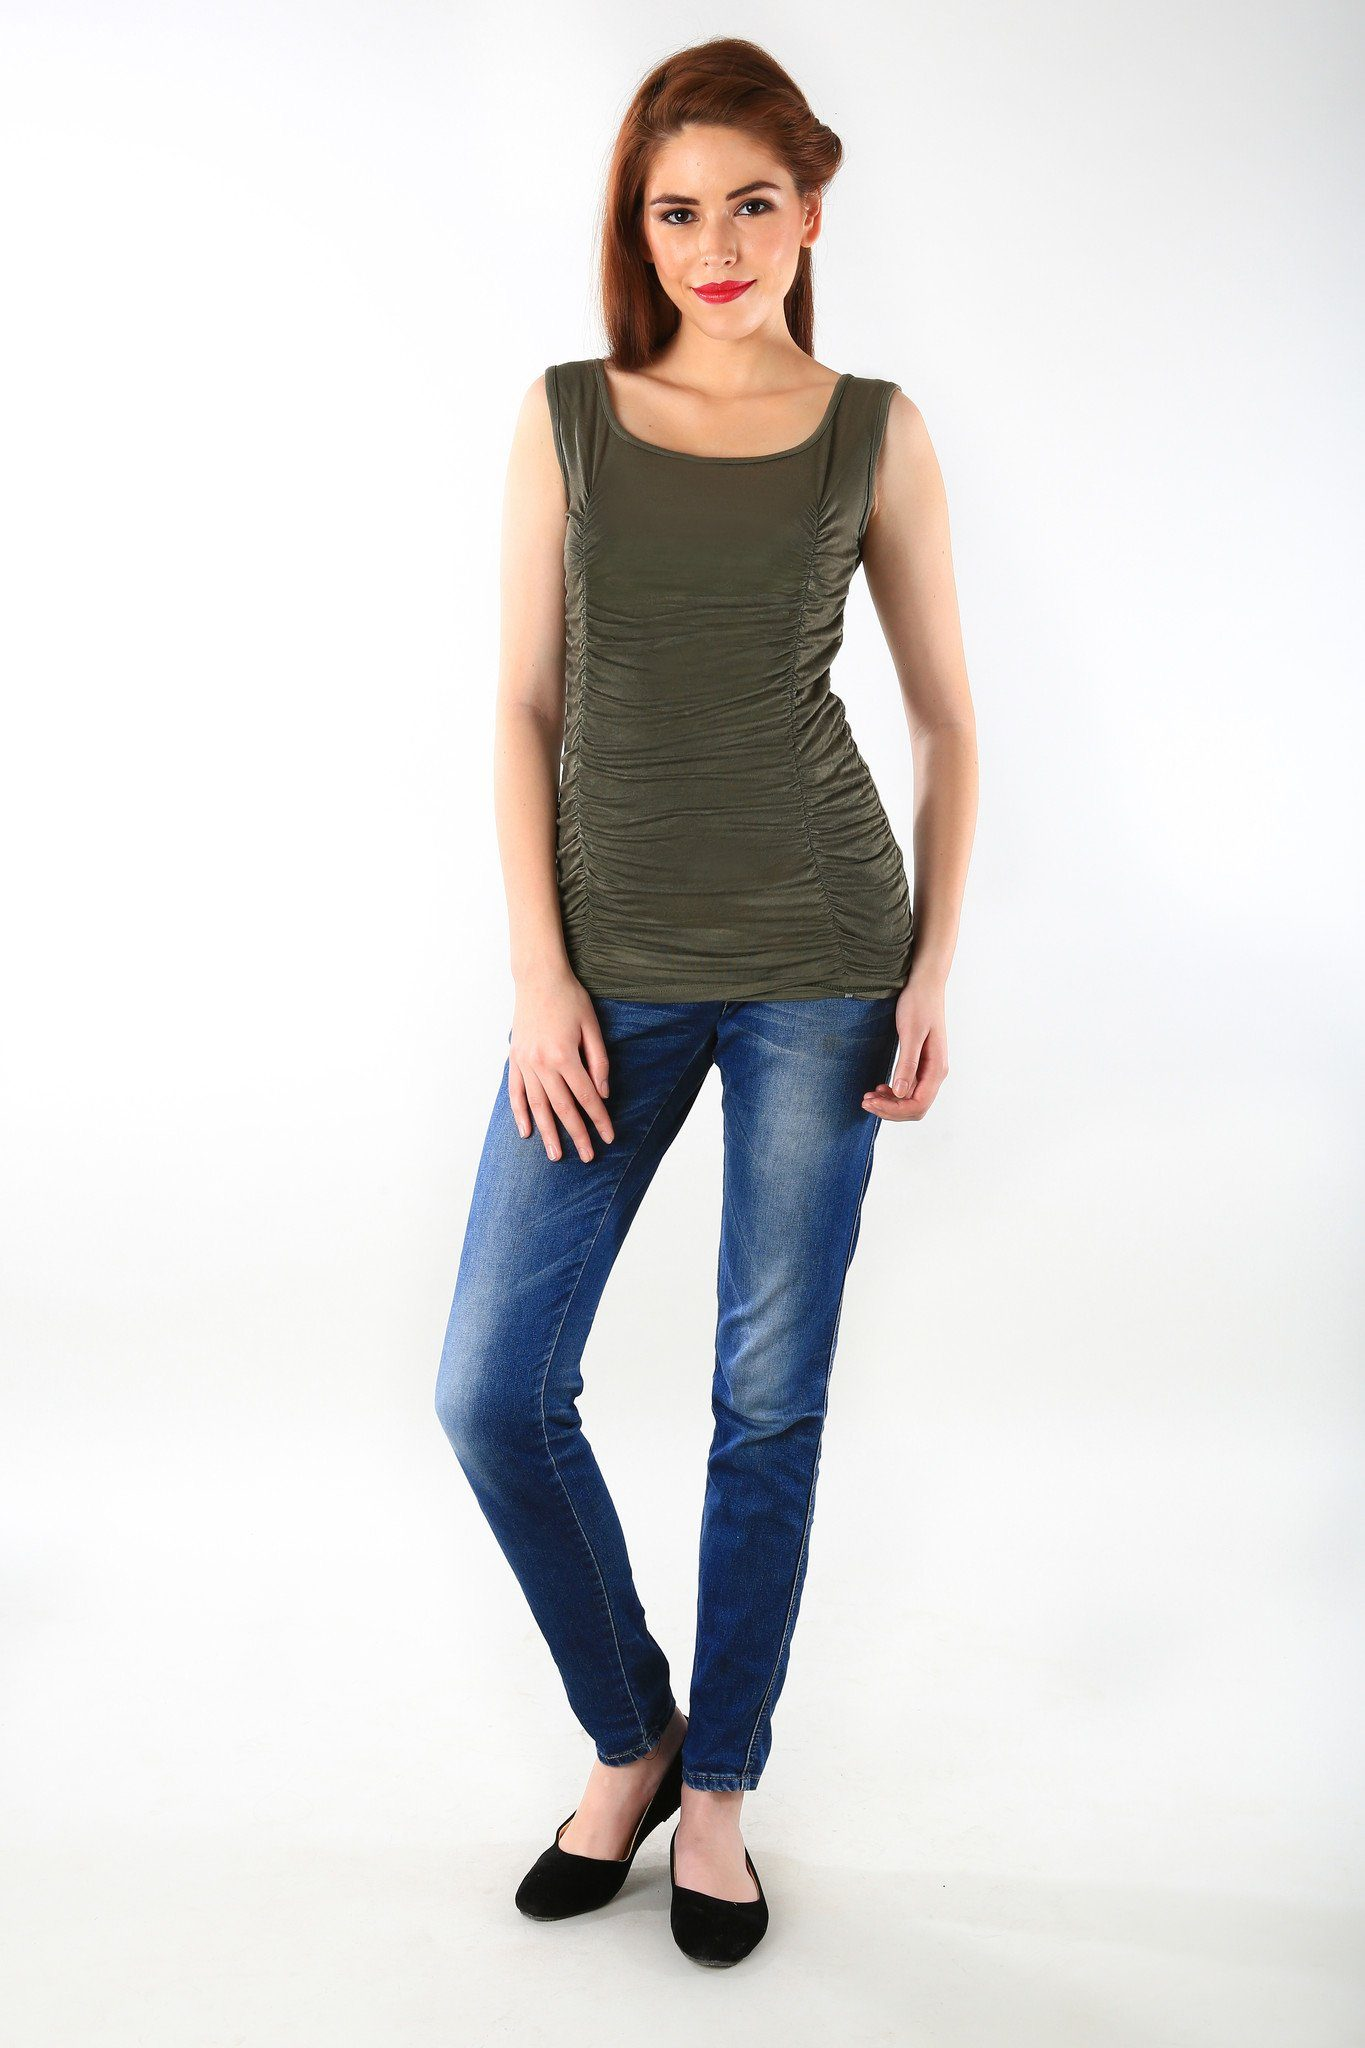 Gathered Olive Maternity Tank Top - MOMZJOY.COM - 1